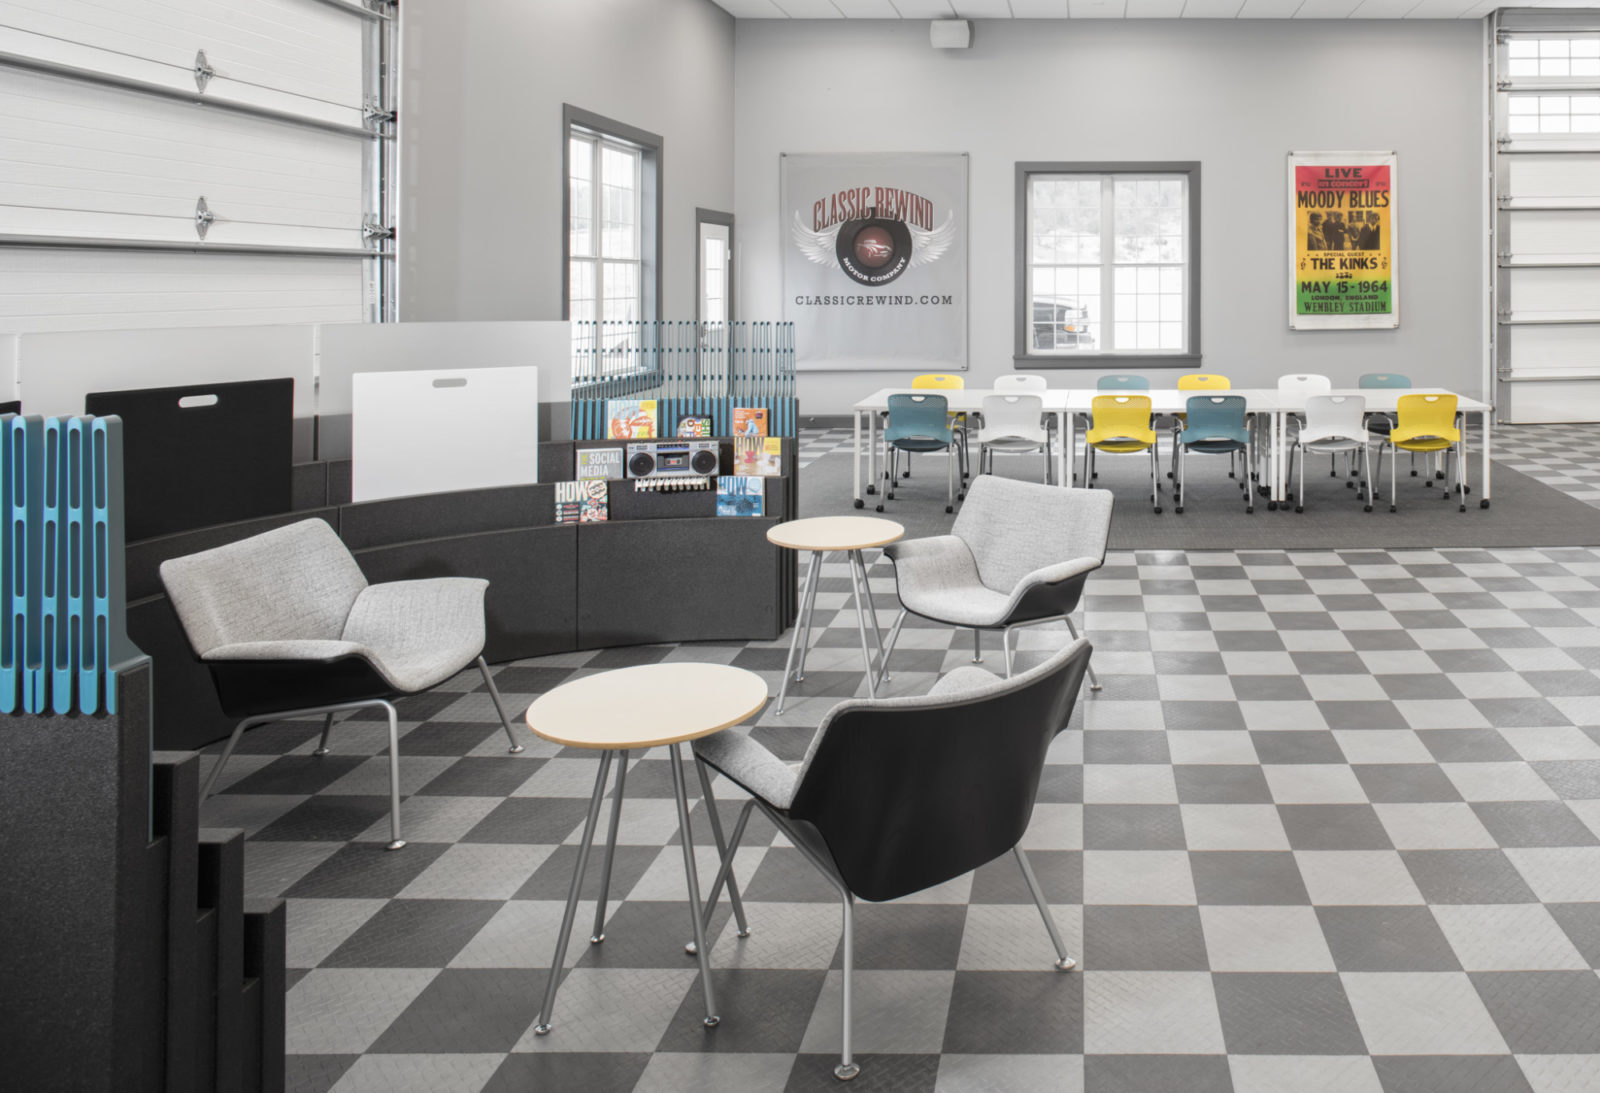 Buzz Creative, Pigott, Herman Miller, Office Furniture, Interior Design, Iowa, Metaform Portfolio, Swoop, Caper Chair, Open Office, Meeting Space